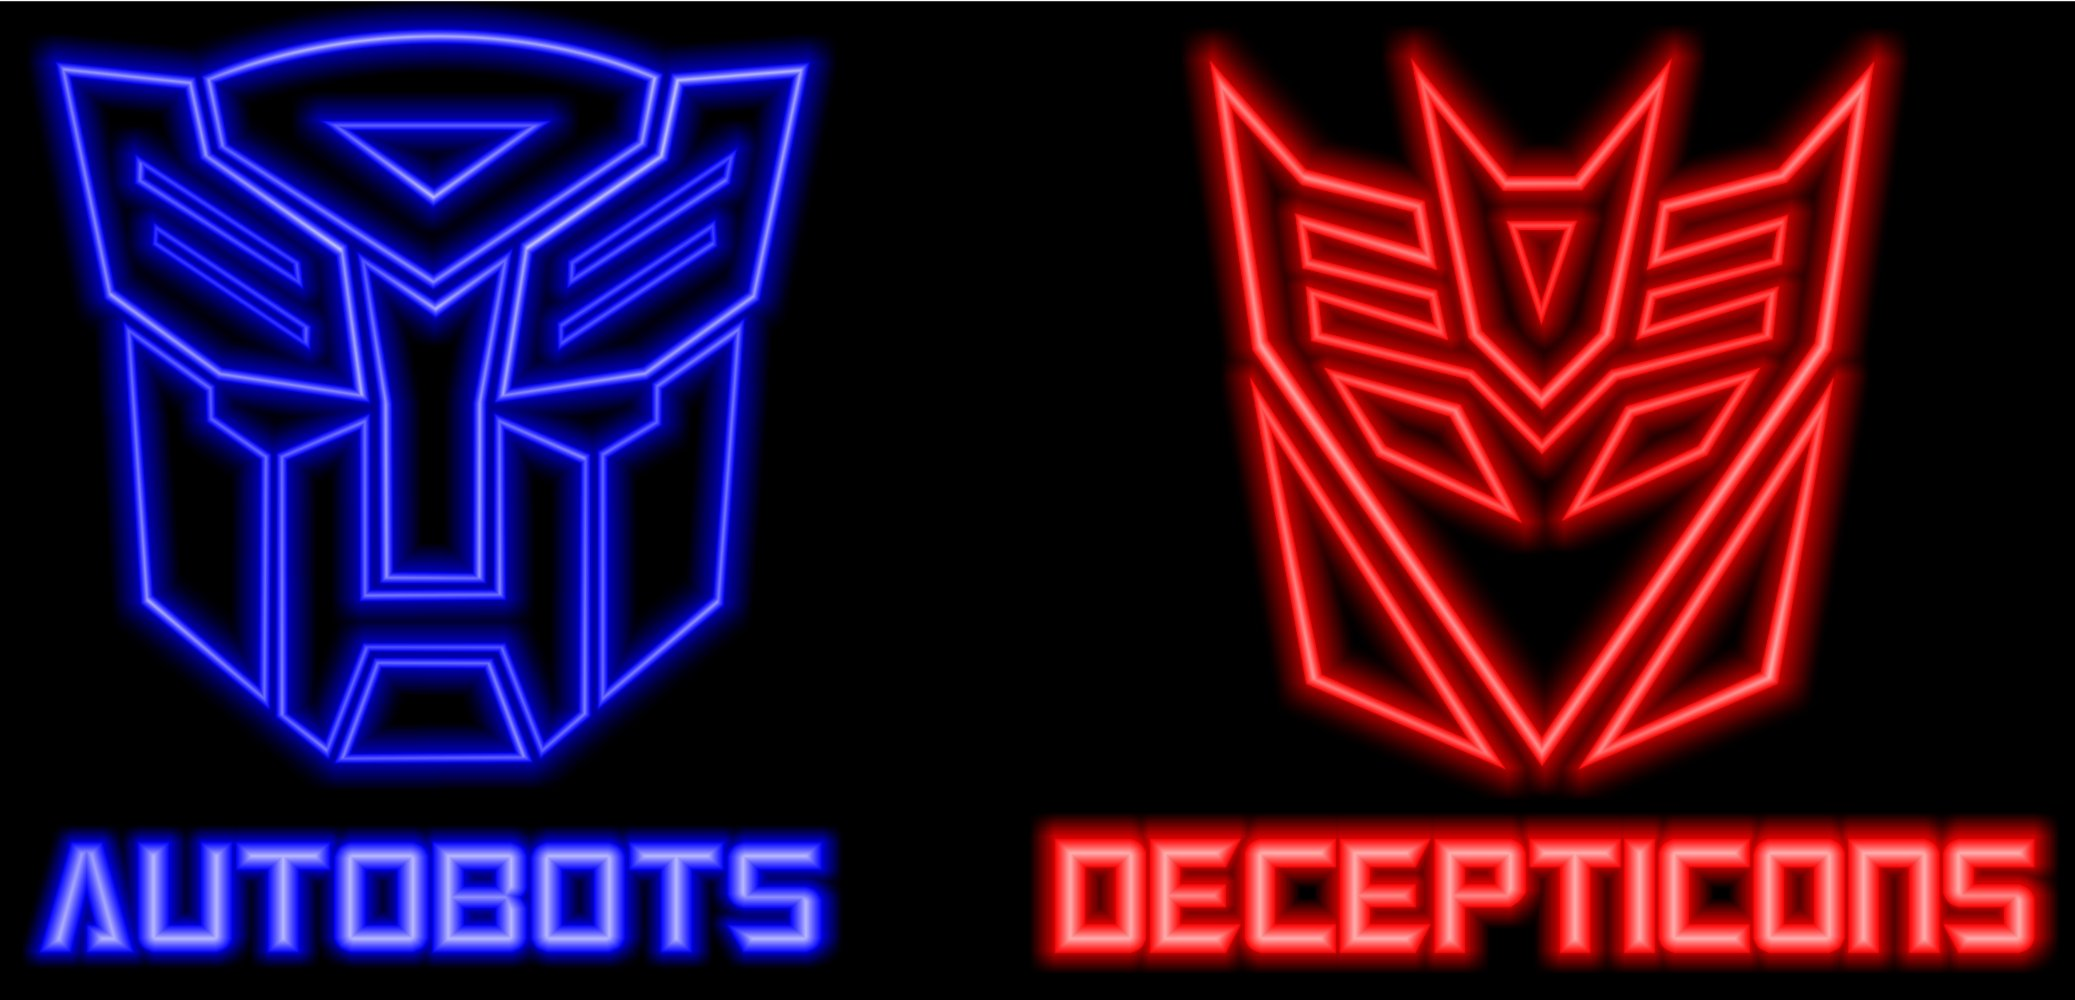 Pin Autobots And Decepticons Logo 2075x1000